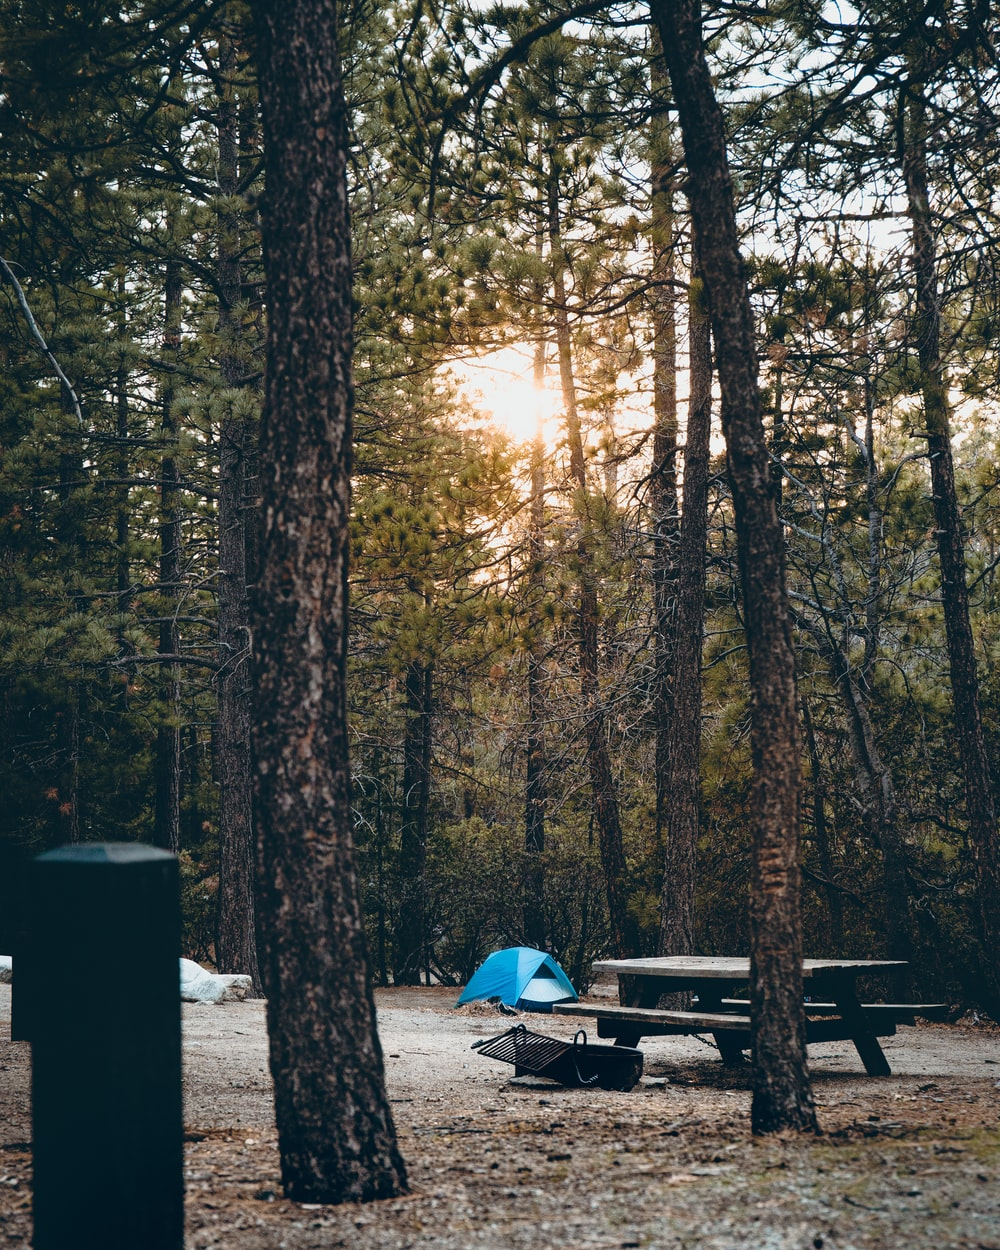 Camping This Weekend | HD photo by Dane Deaner (@danedeaner